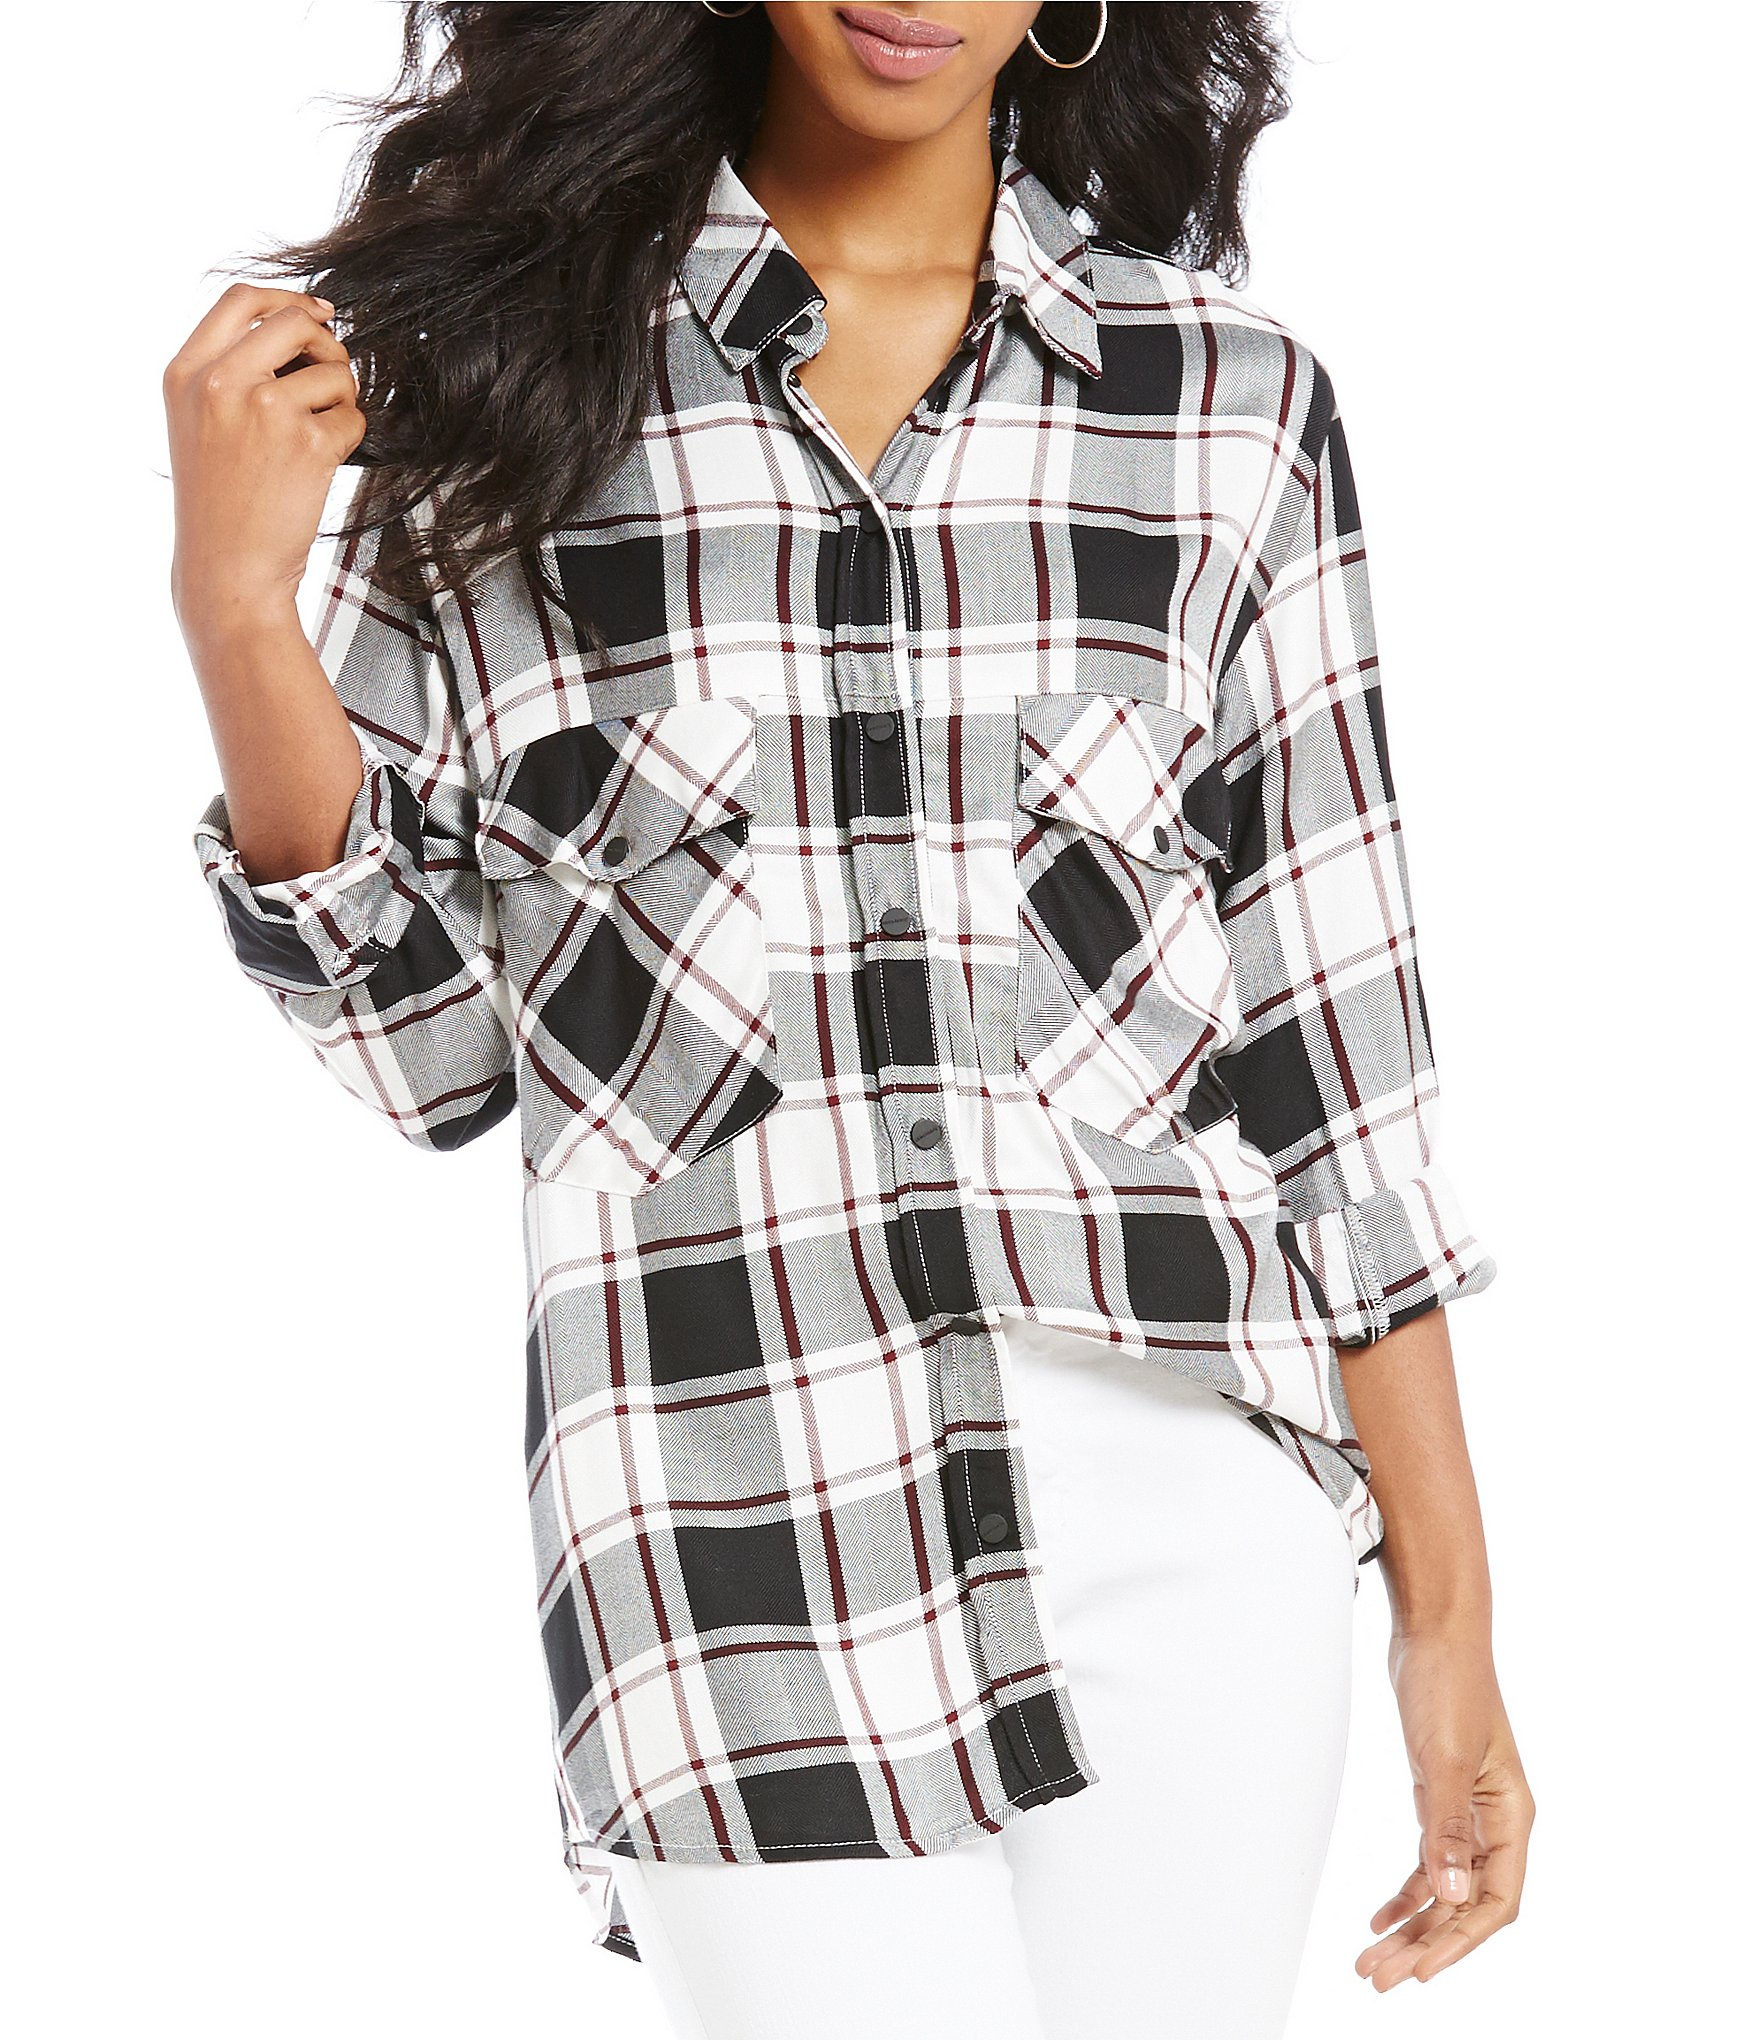 Boyfriend Shirt For Women